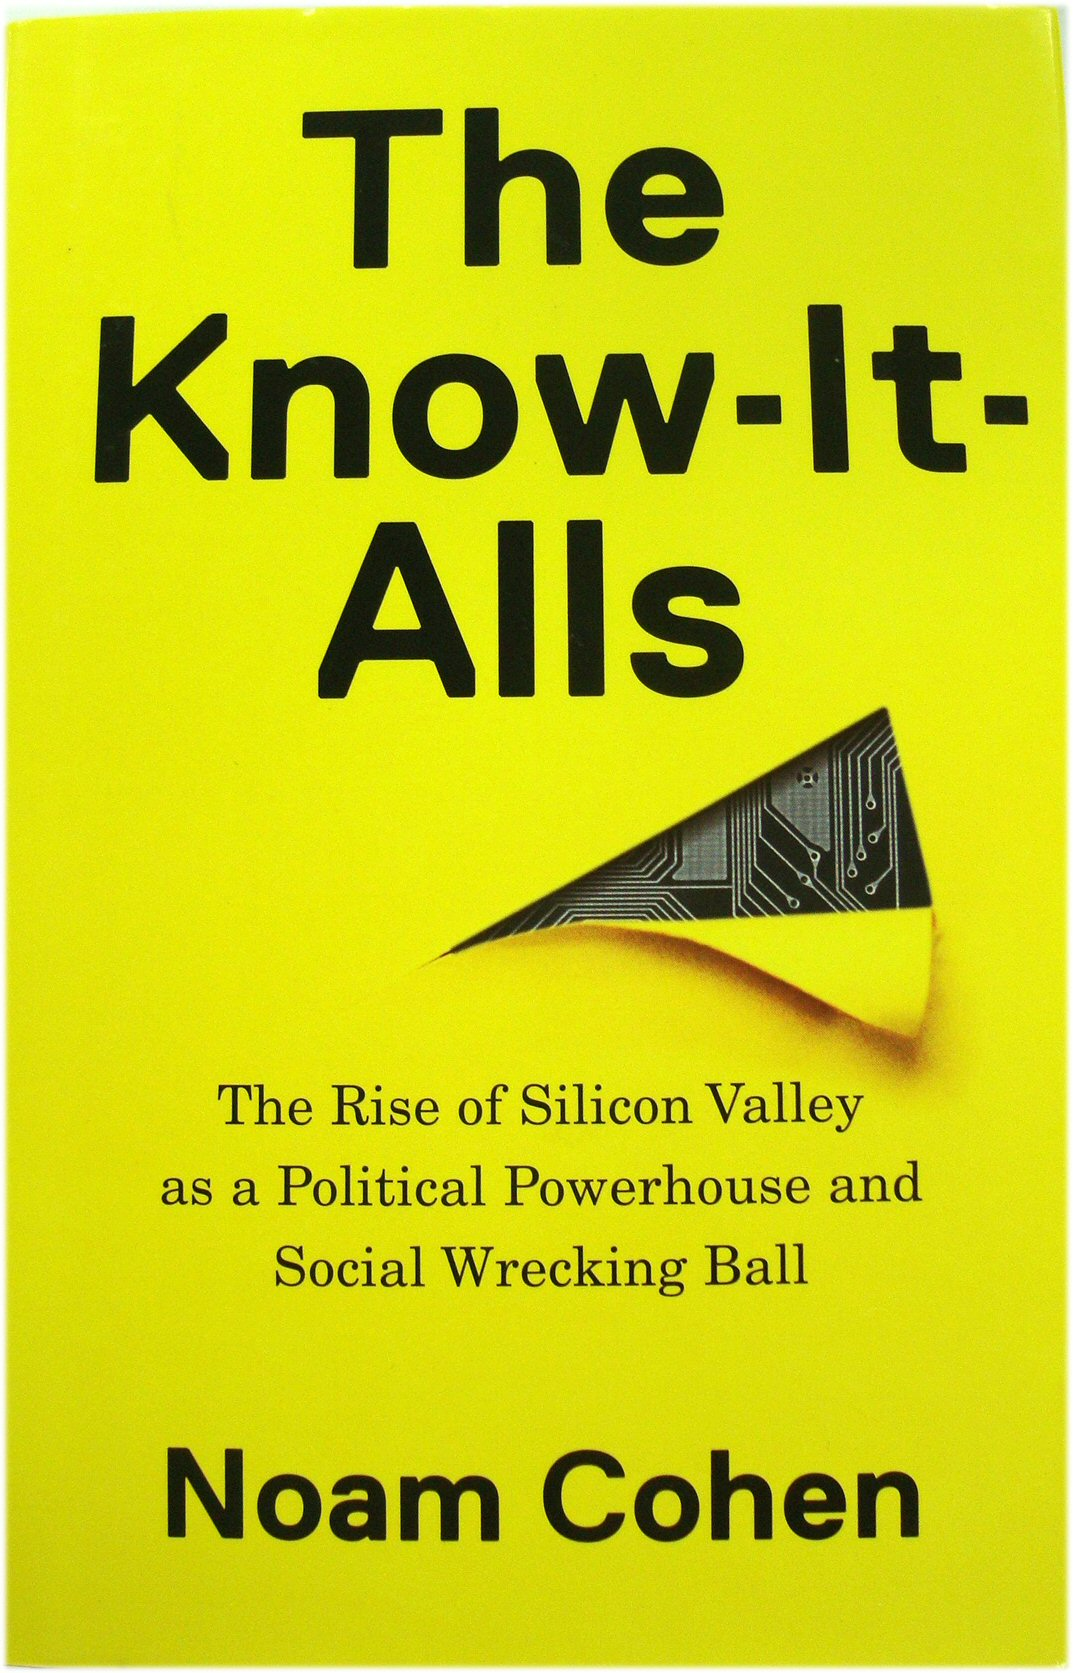 Image for The Know-It-Alls: The Rise of Silicon Valley as a Political Powerhouse and Social Wrecking Ball